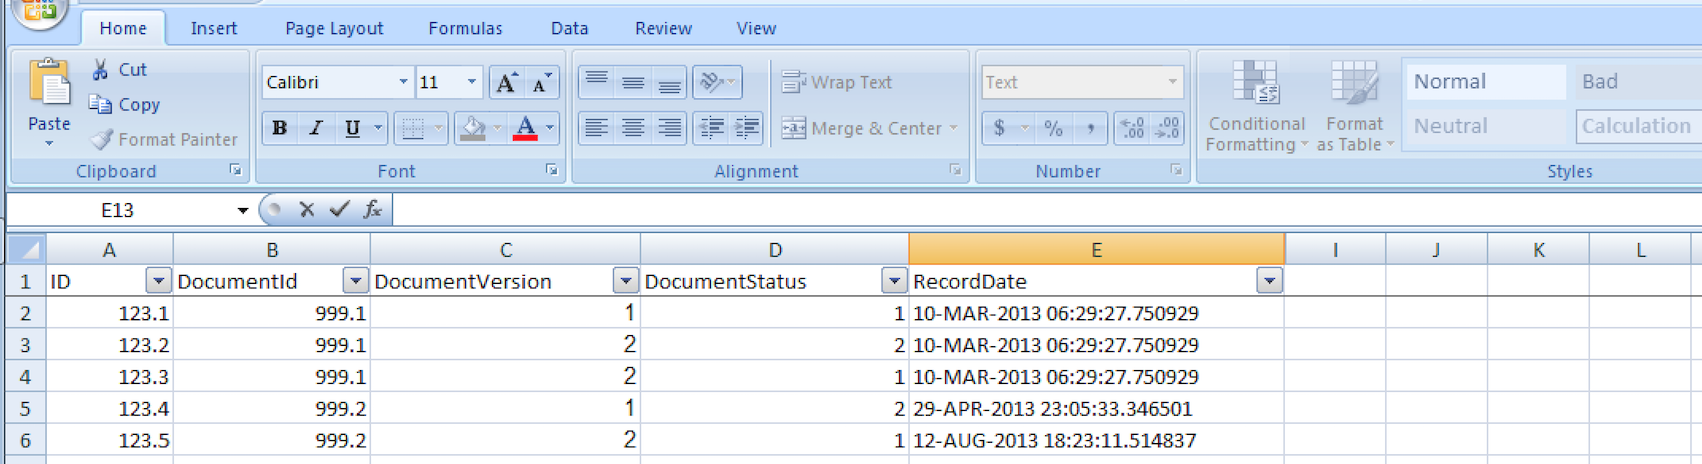 Using Excel to generate SQL statements from raw data | Igor Kromin